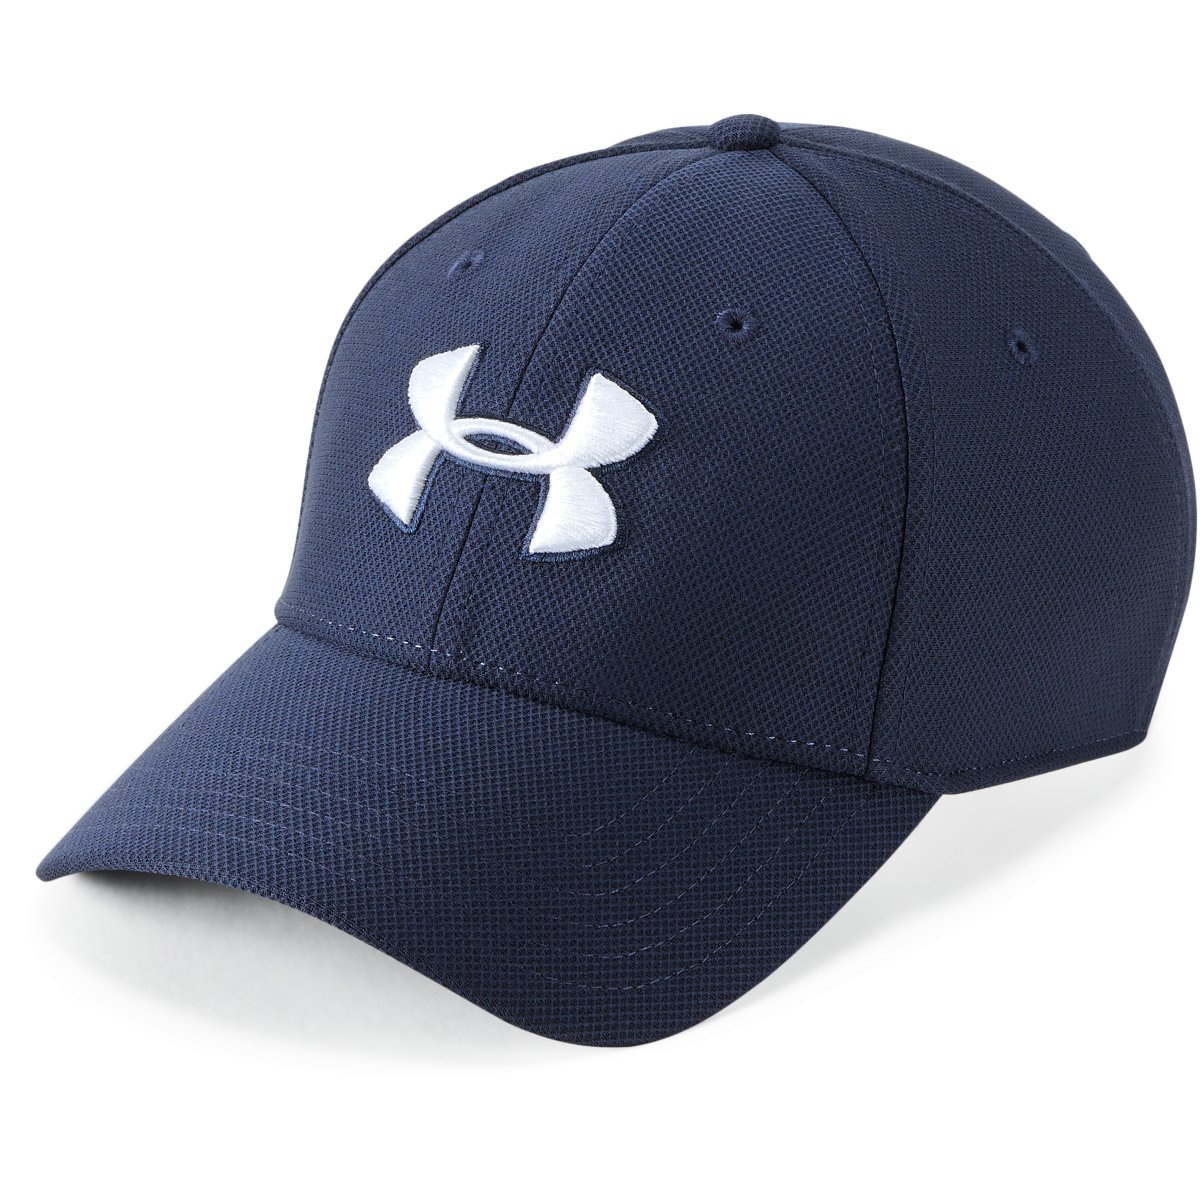 Under Armour Blitzing 3.0 Cap | Headwear